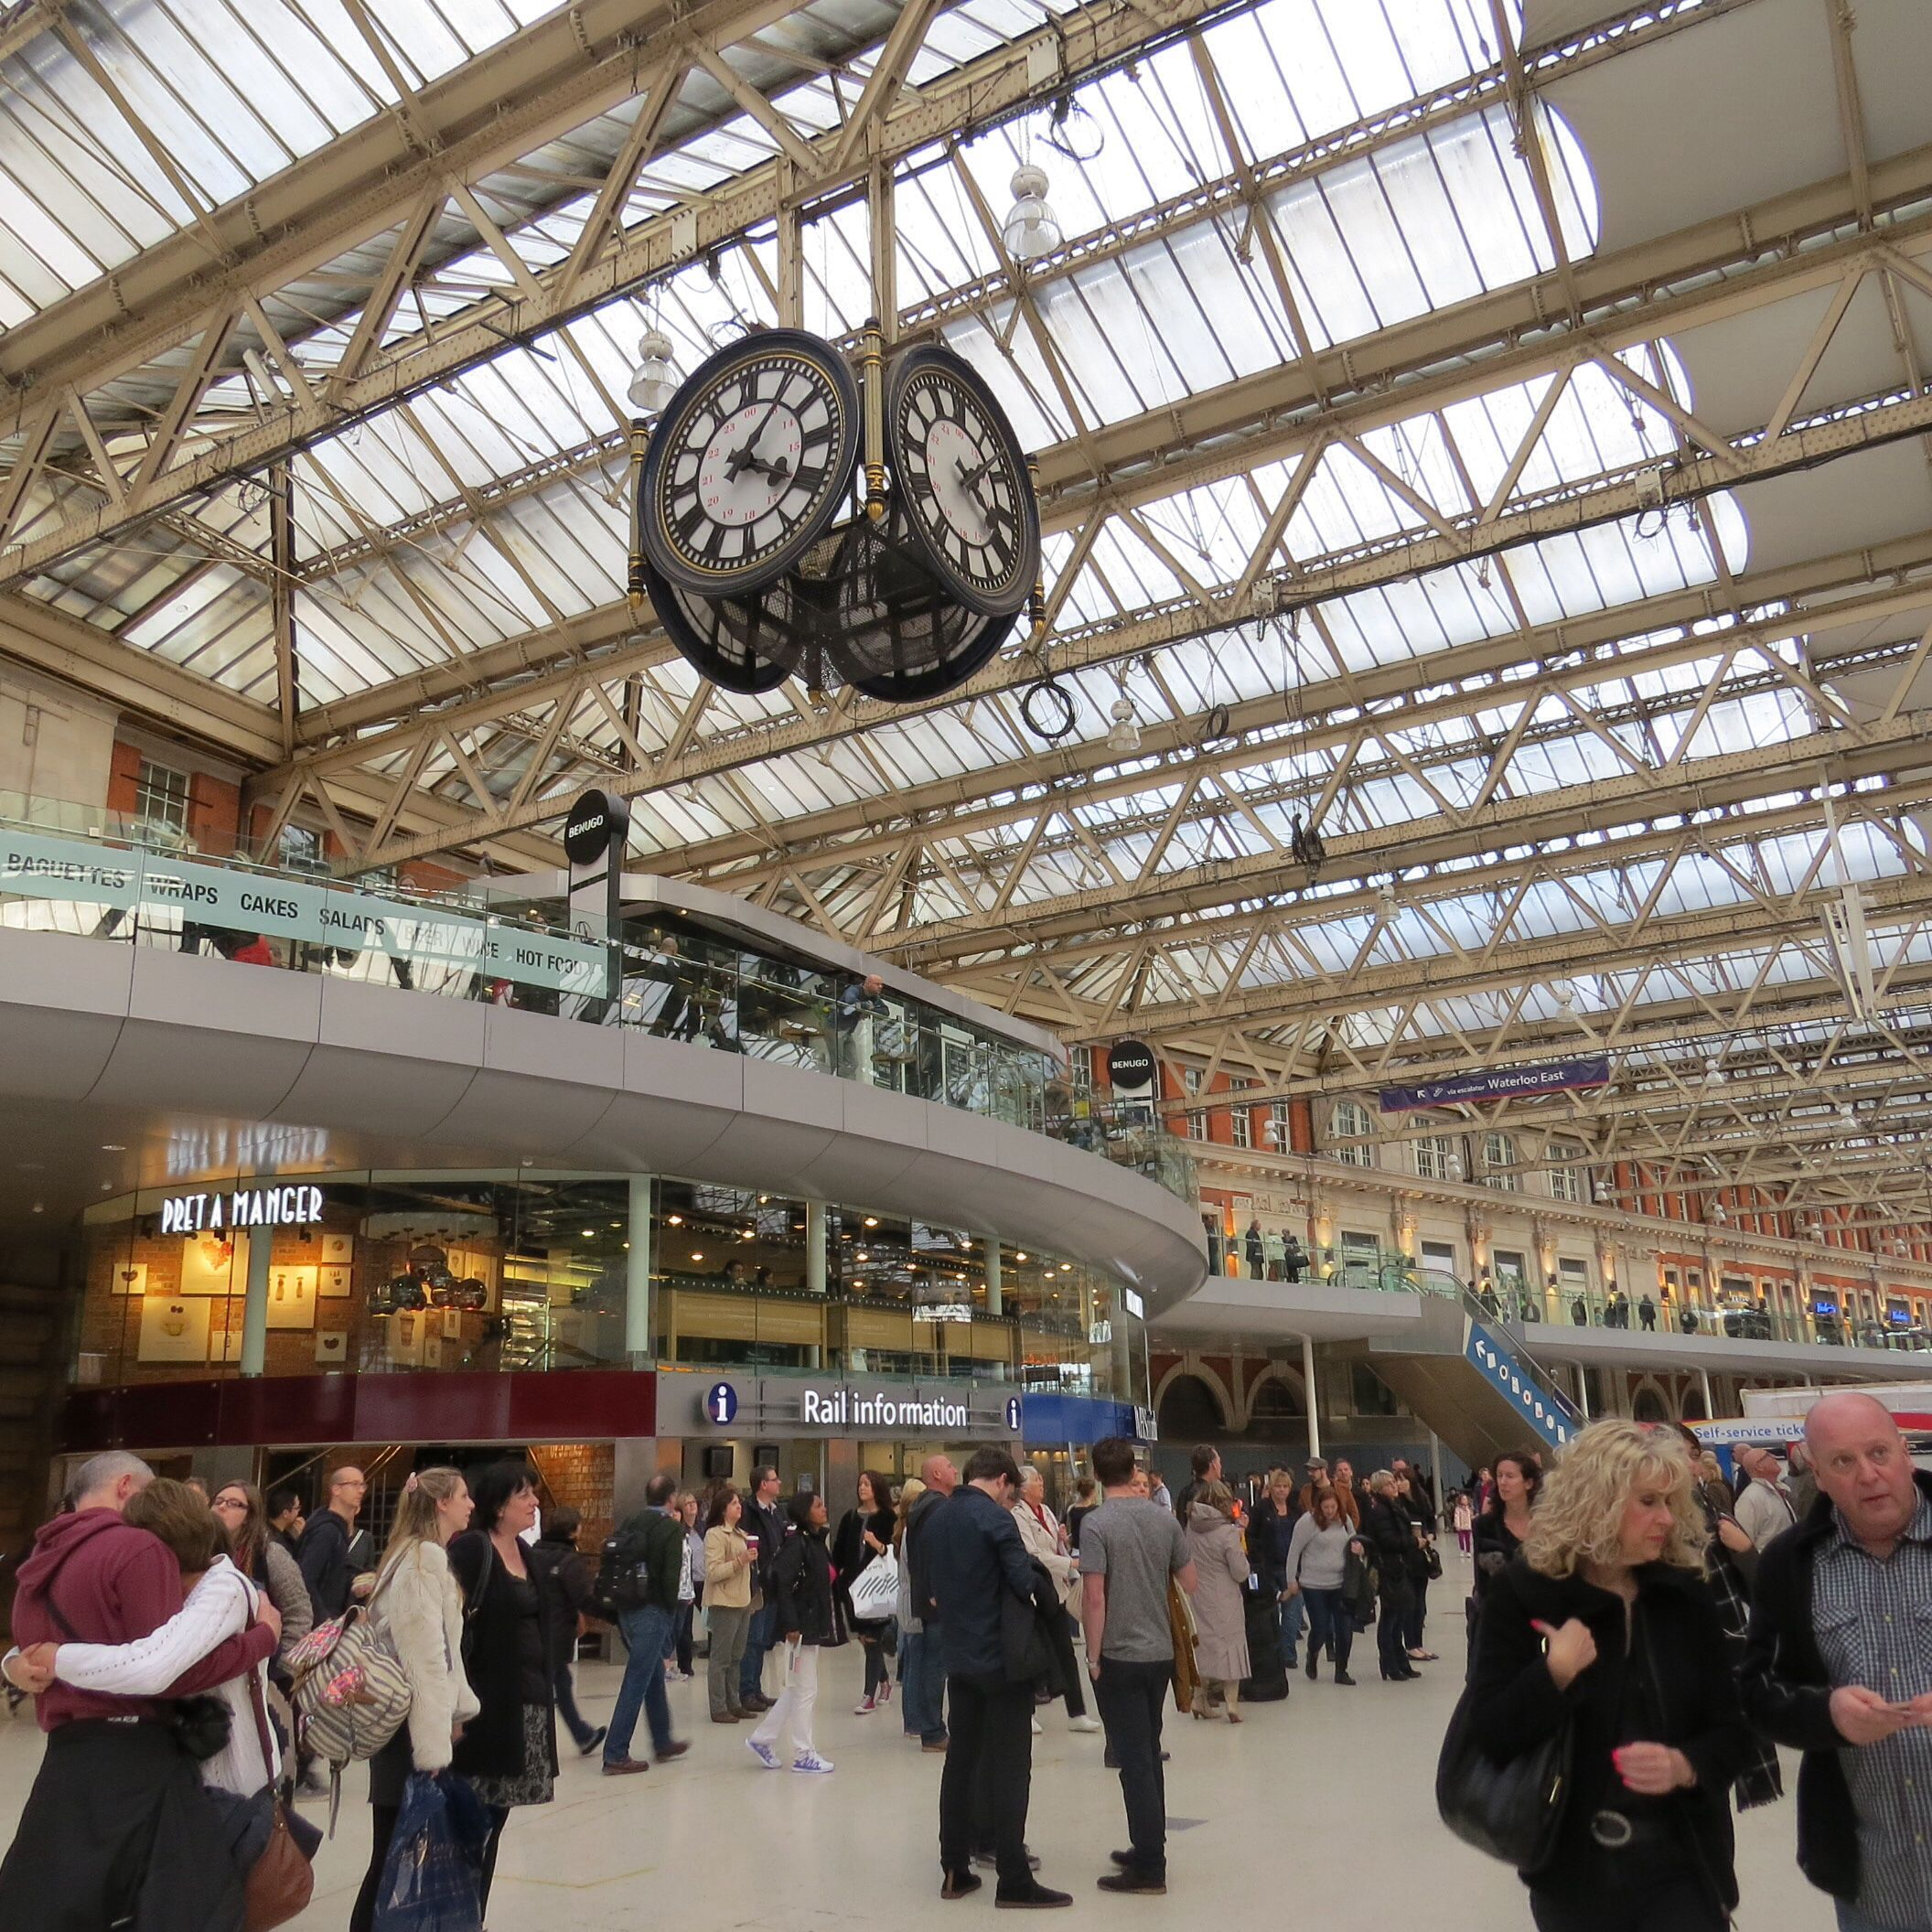 A Moment in Time at Waterloo Station